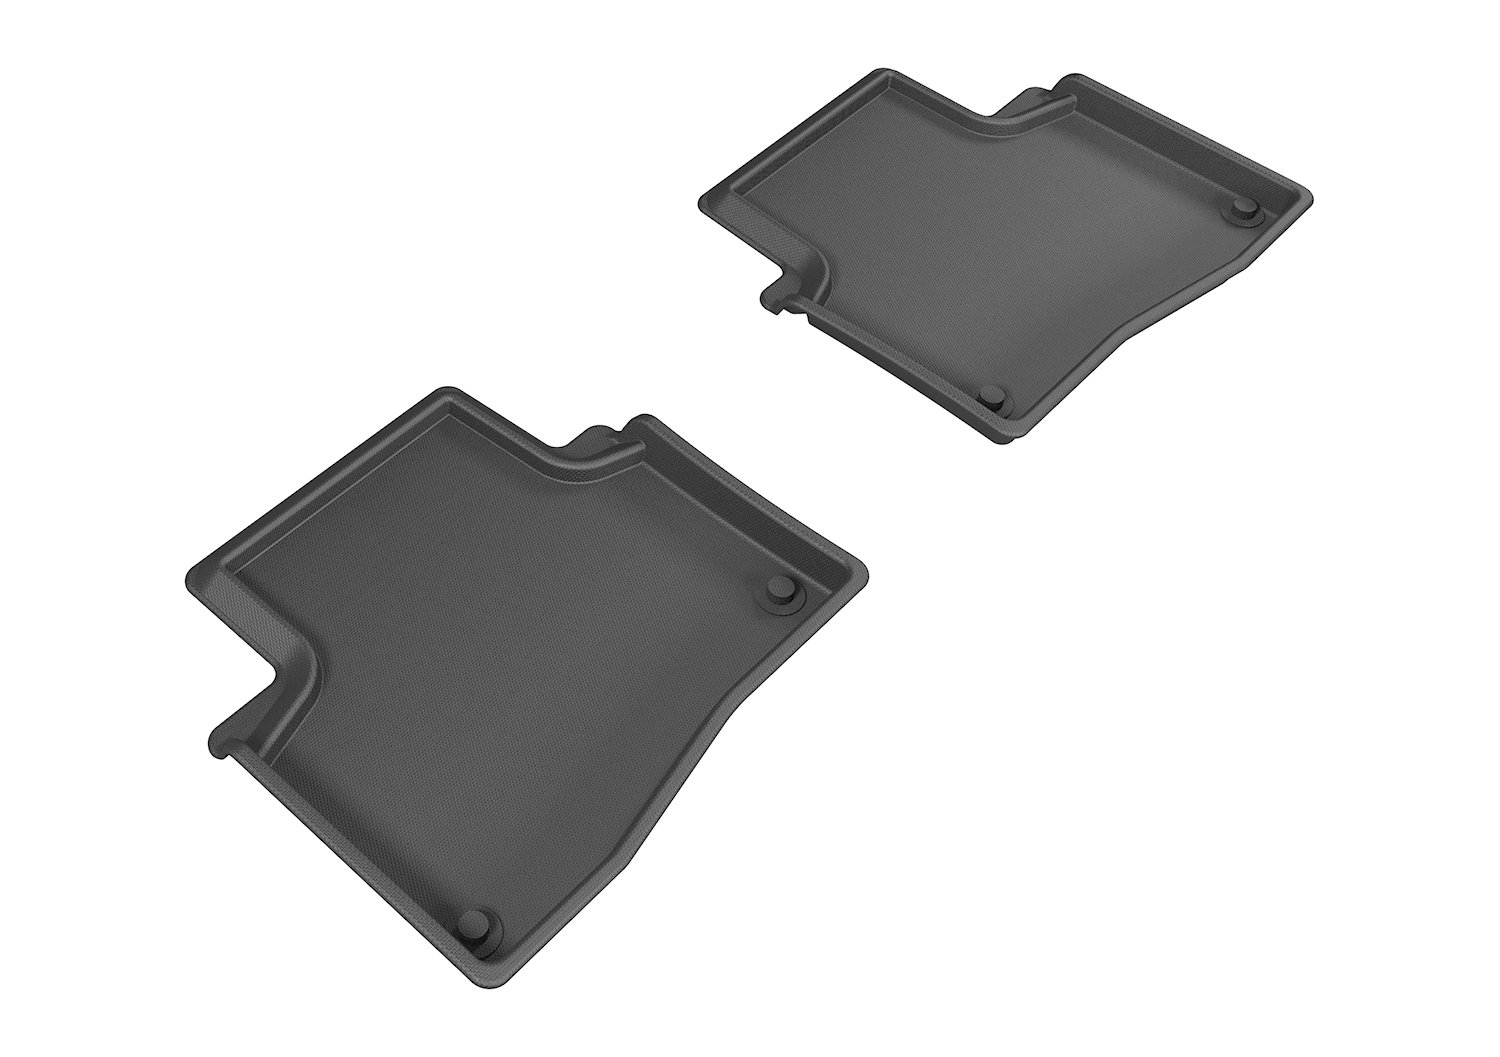 3D MAXpider Second Row Custom Fit All-Weather Floor Mat for Select Acura RLX Models Kagu Rubber Black L1AC00721509